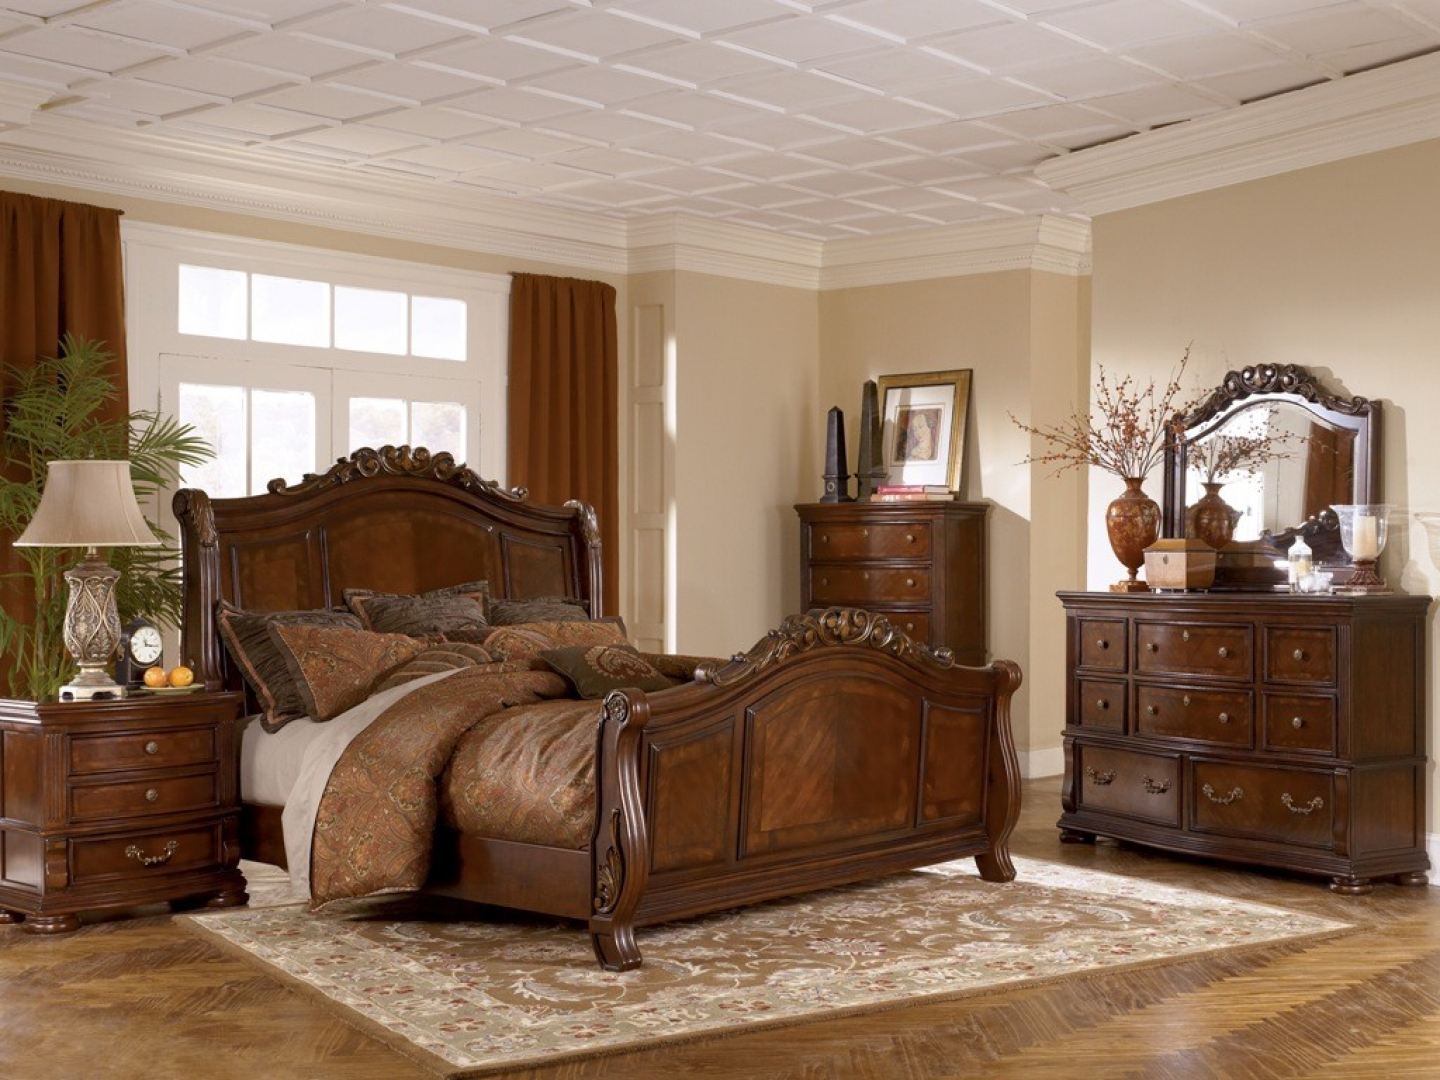 Compact Bedroom Furniture Sets King Size BedRaya Furniture king size bedroom furniture sets